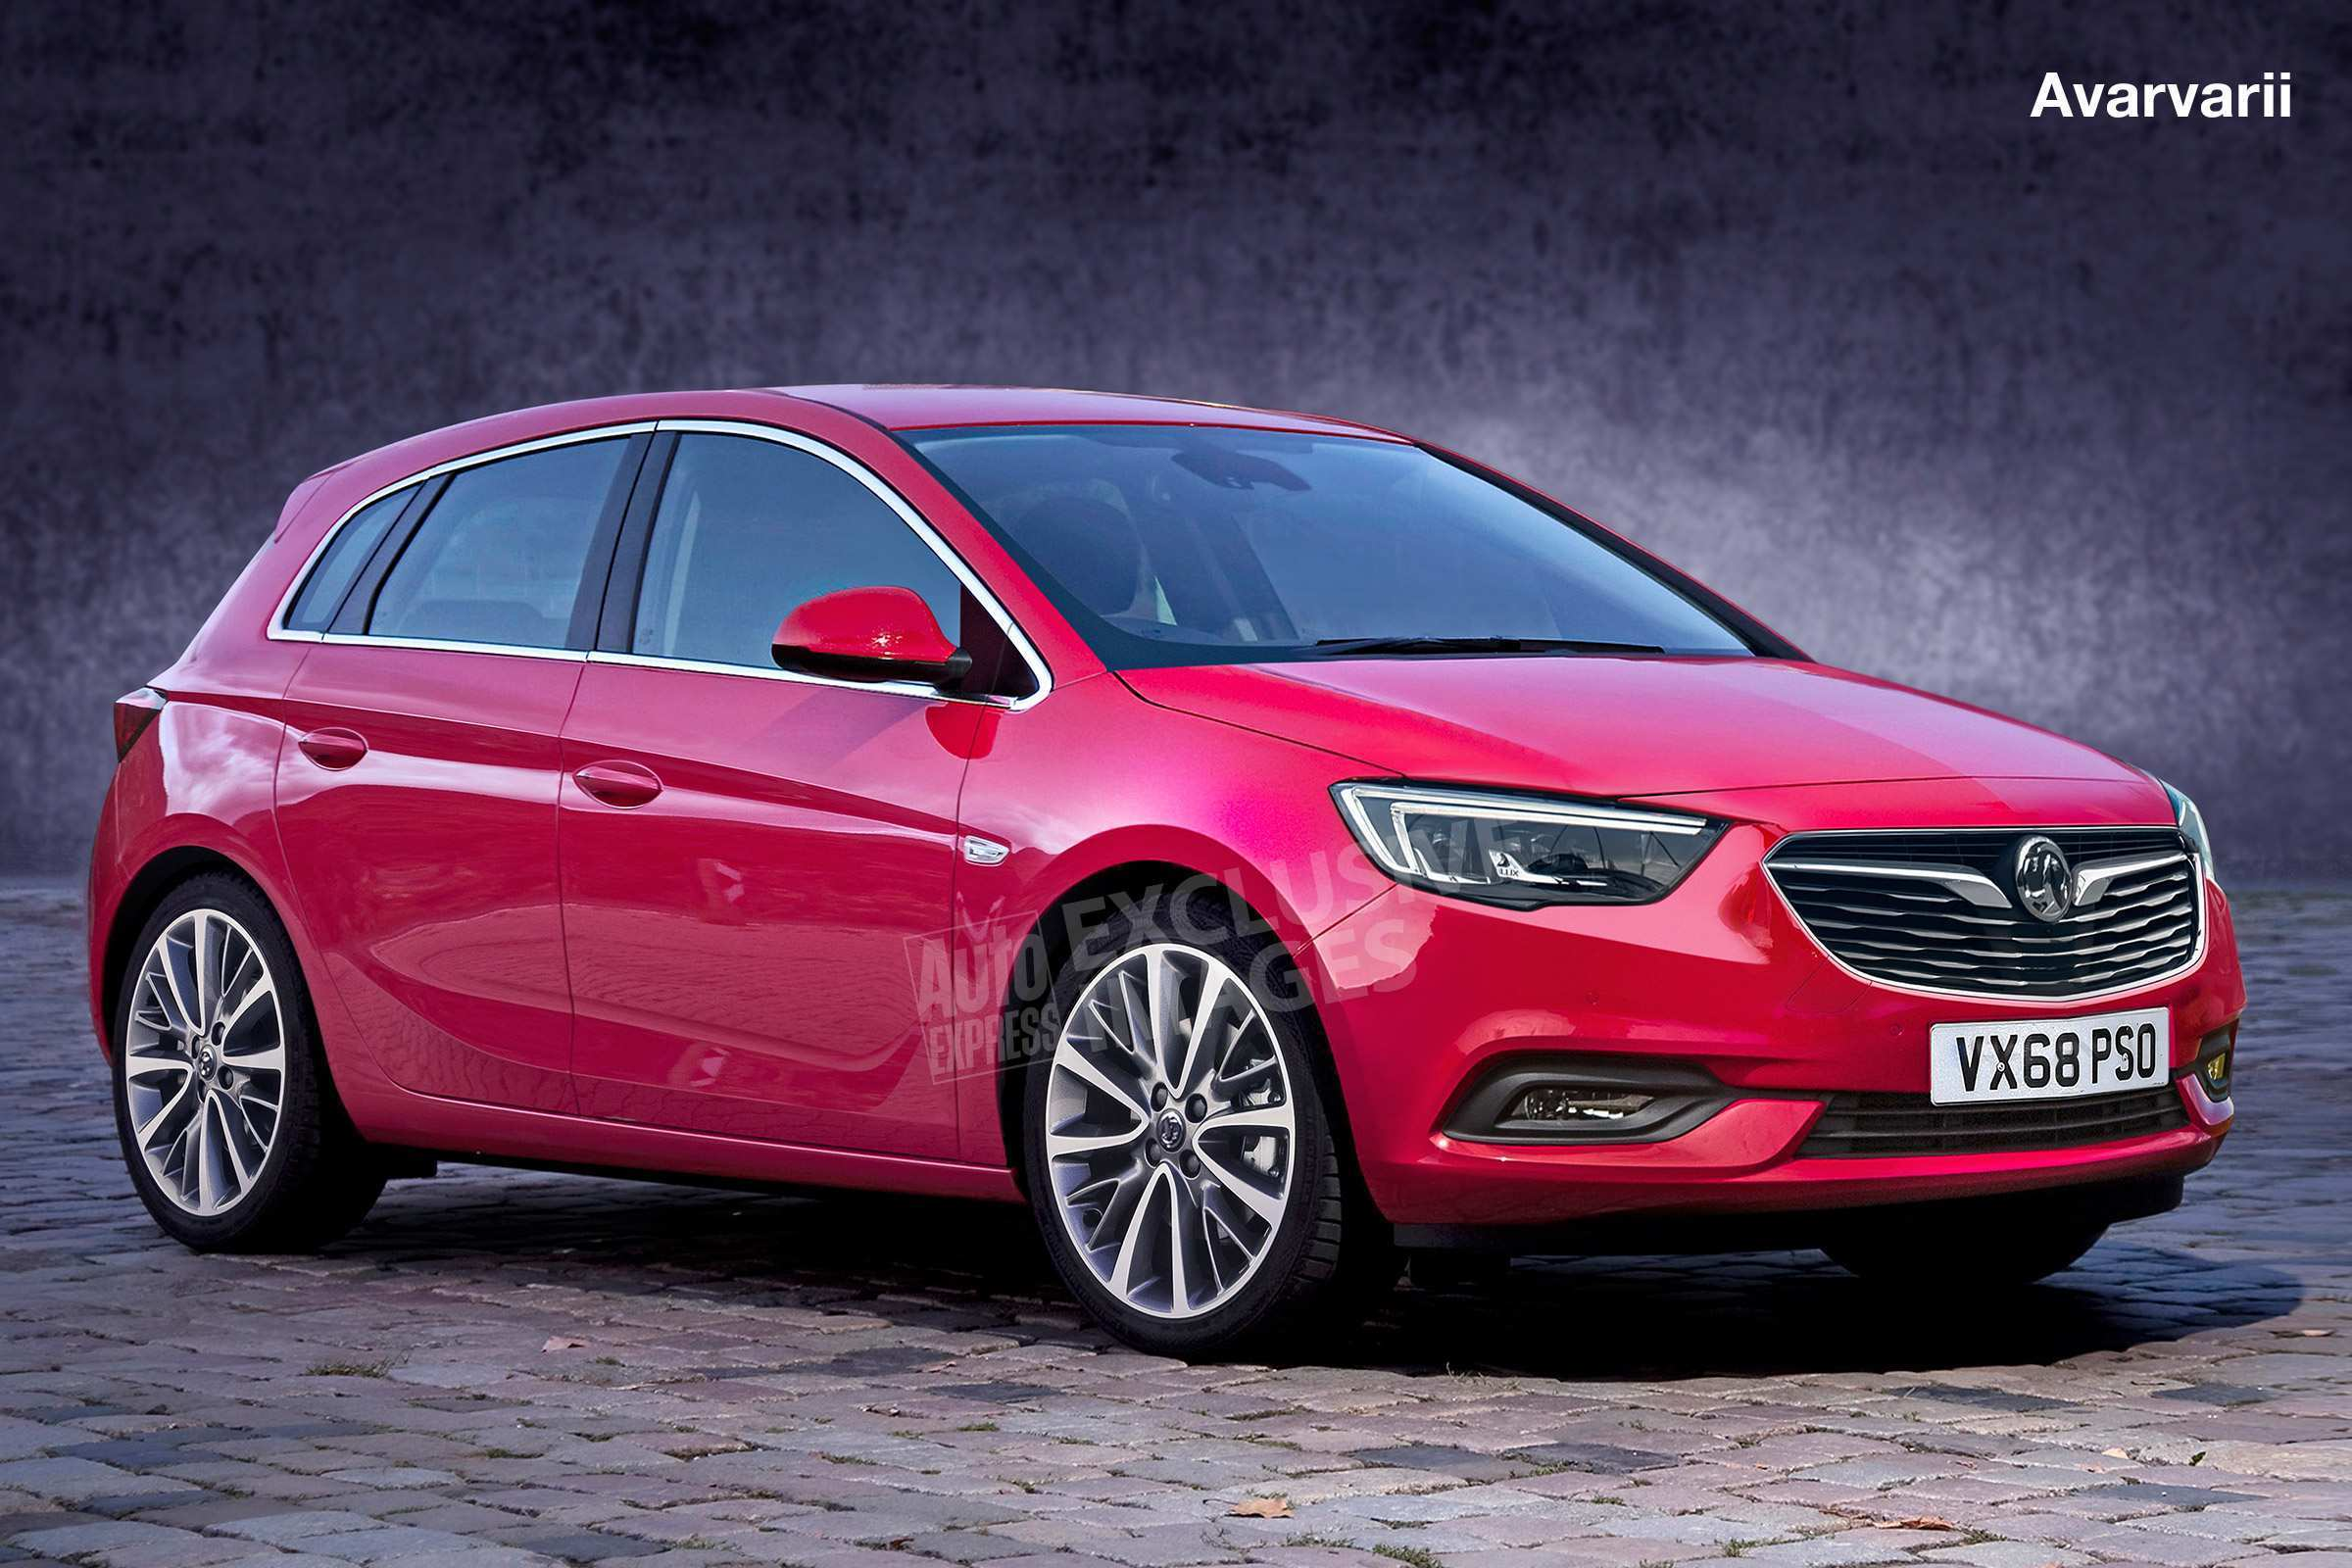 73 New Opel Corsa Electric 2020 Style